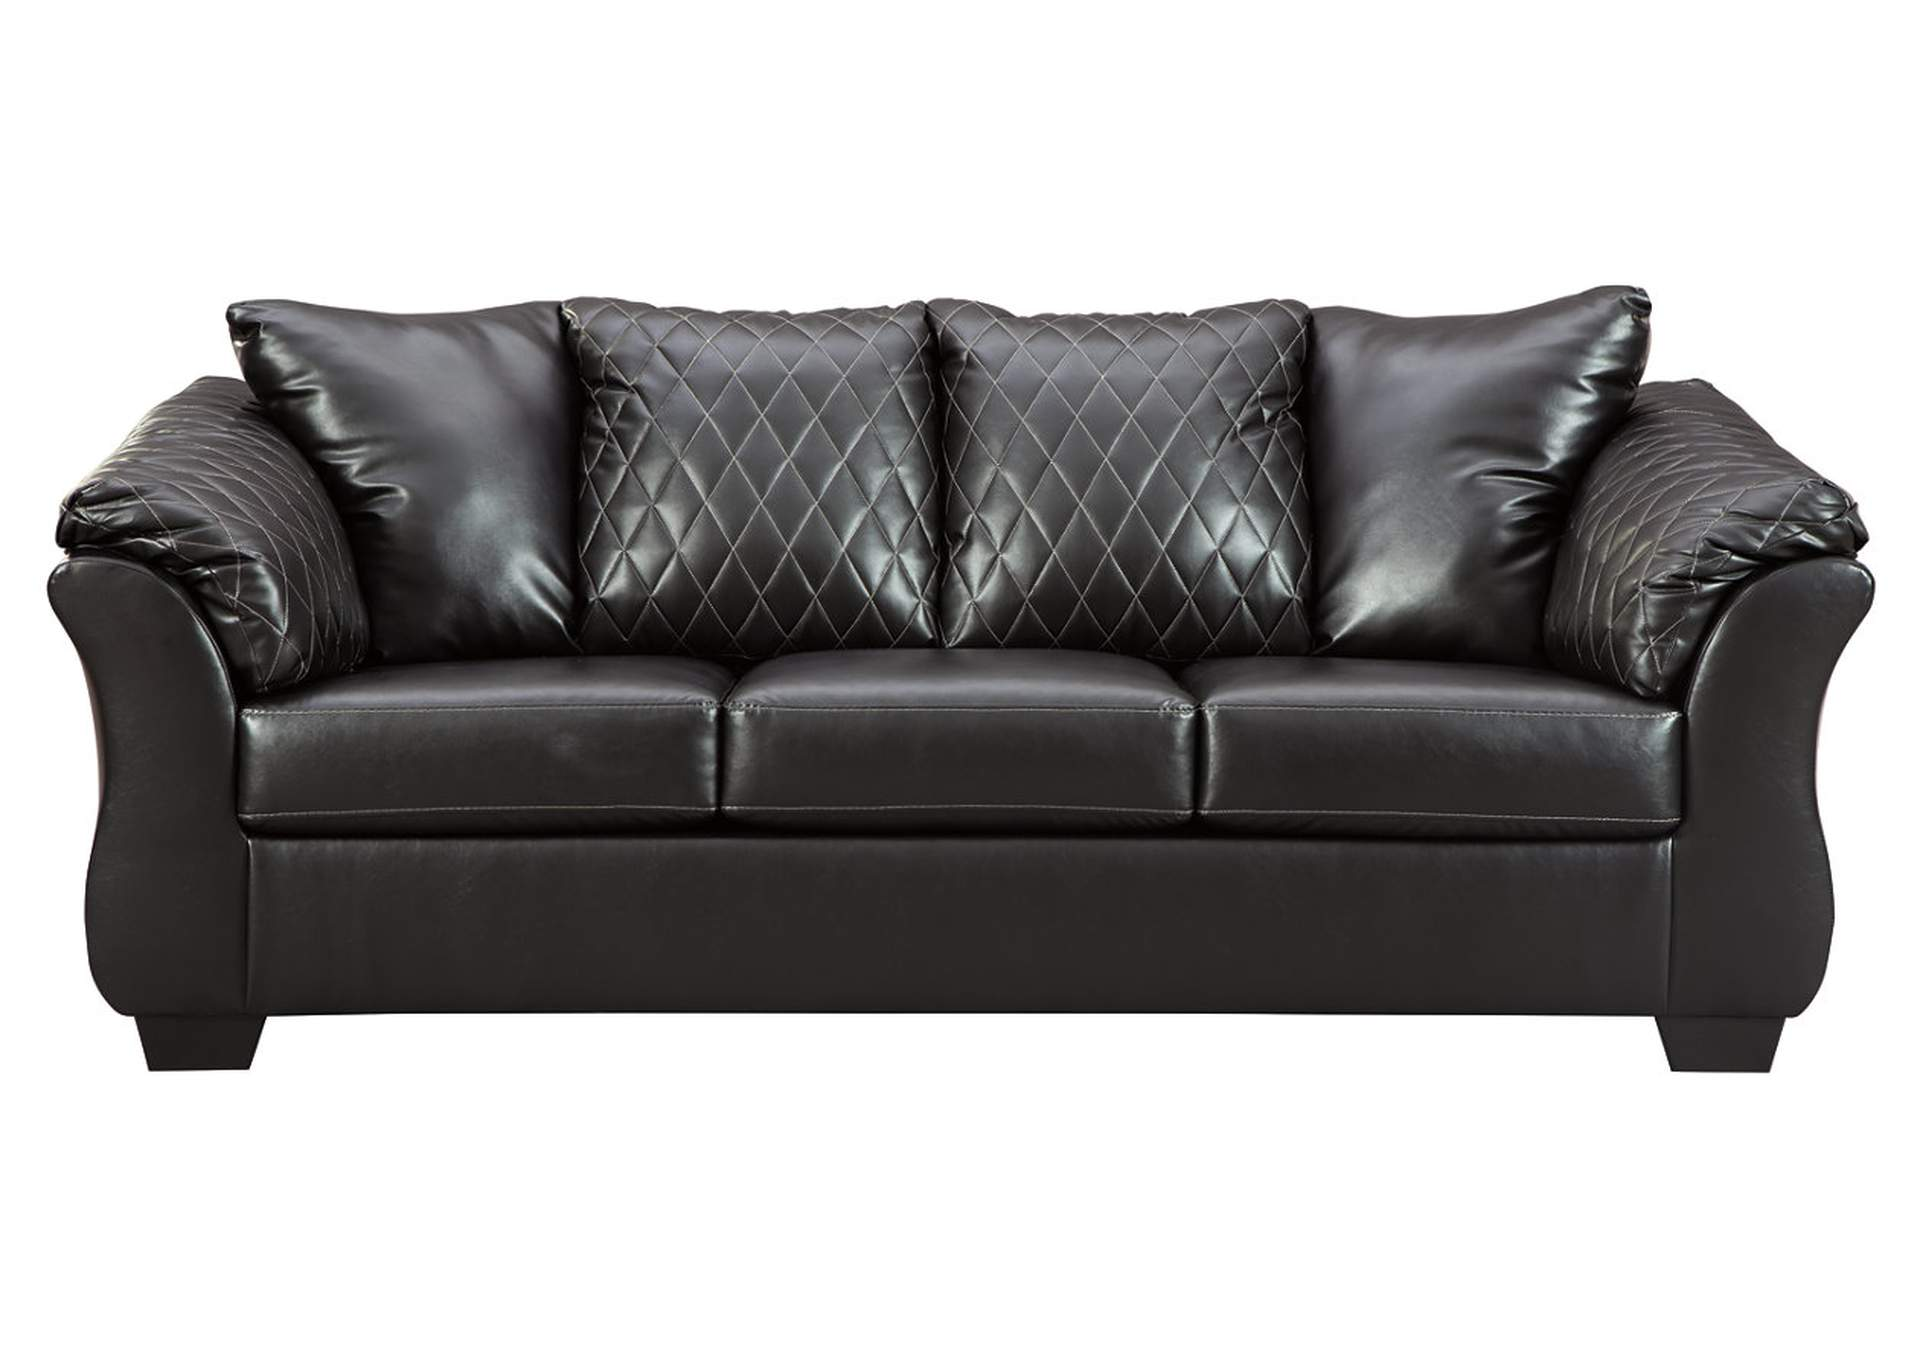 Betrillo Sofa,Signature Design By Ashley